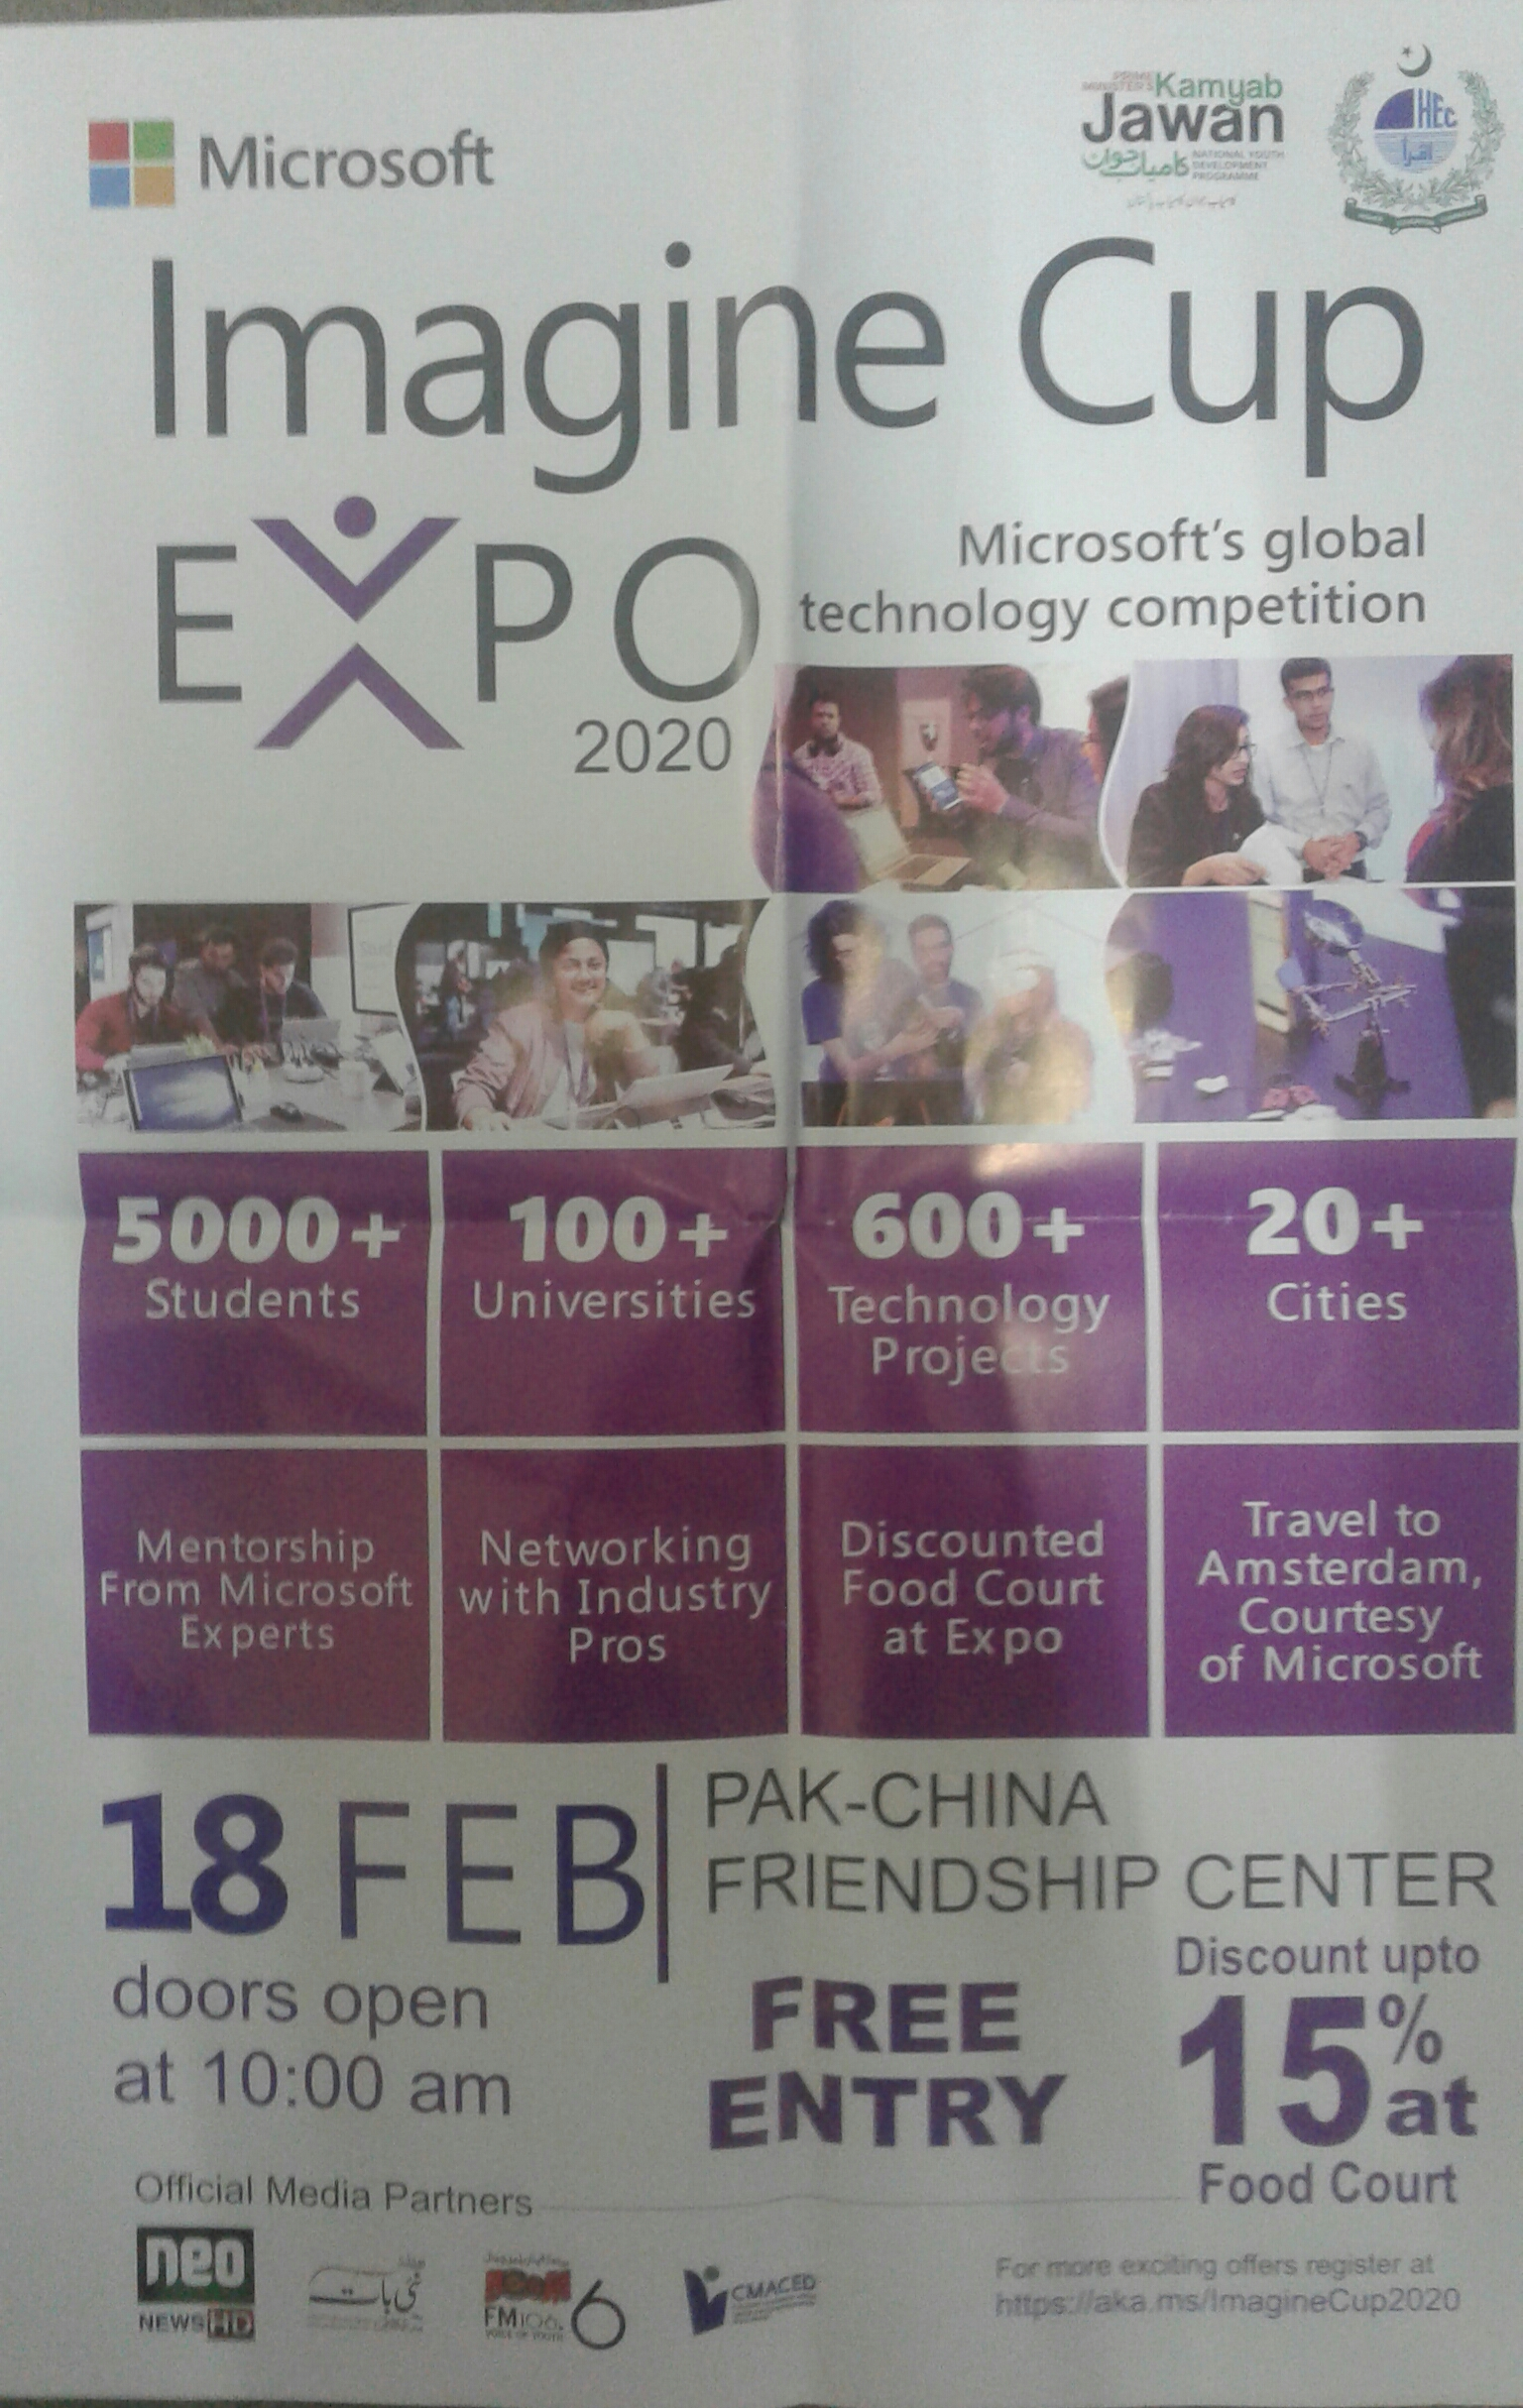 Imagine Cup Expo 2020